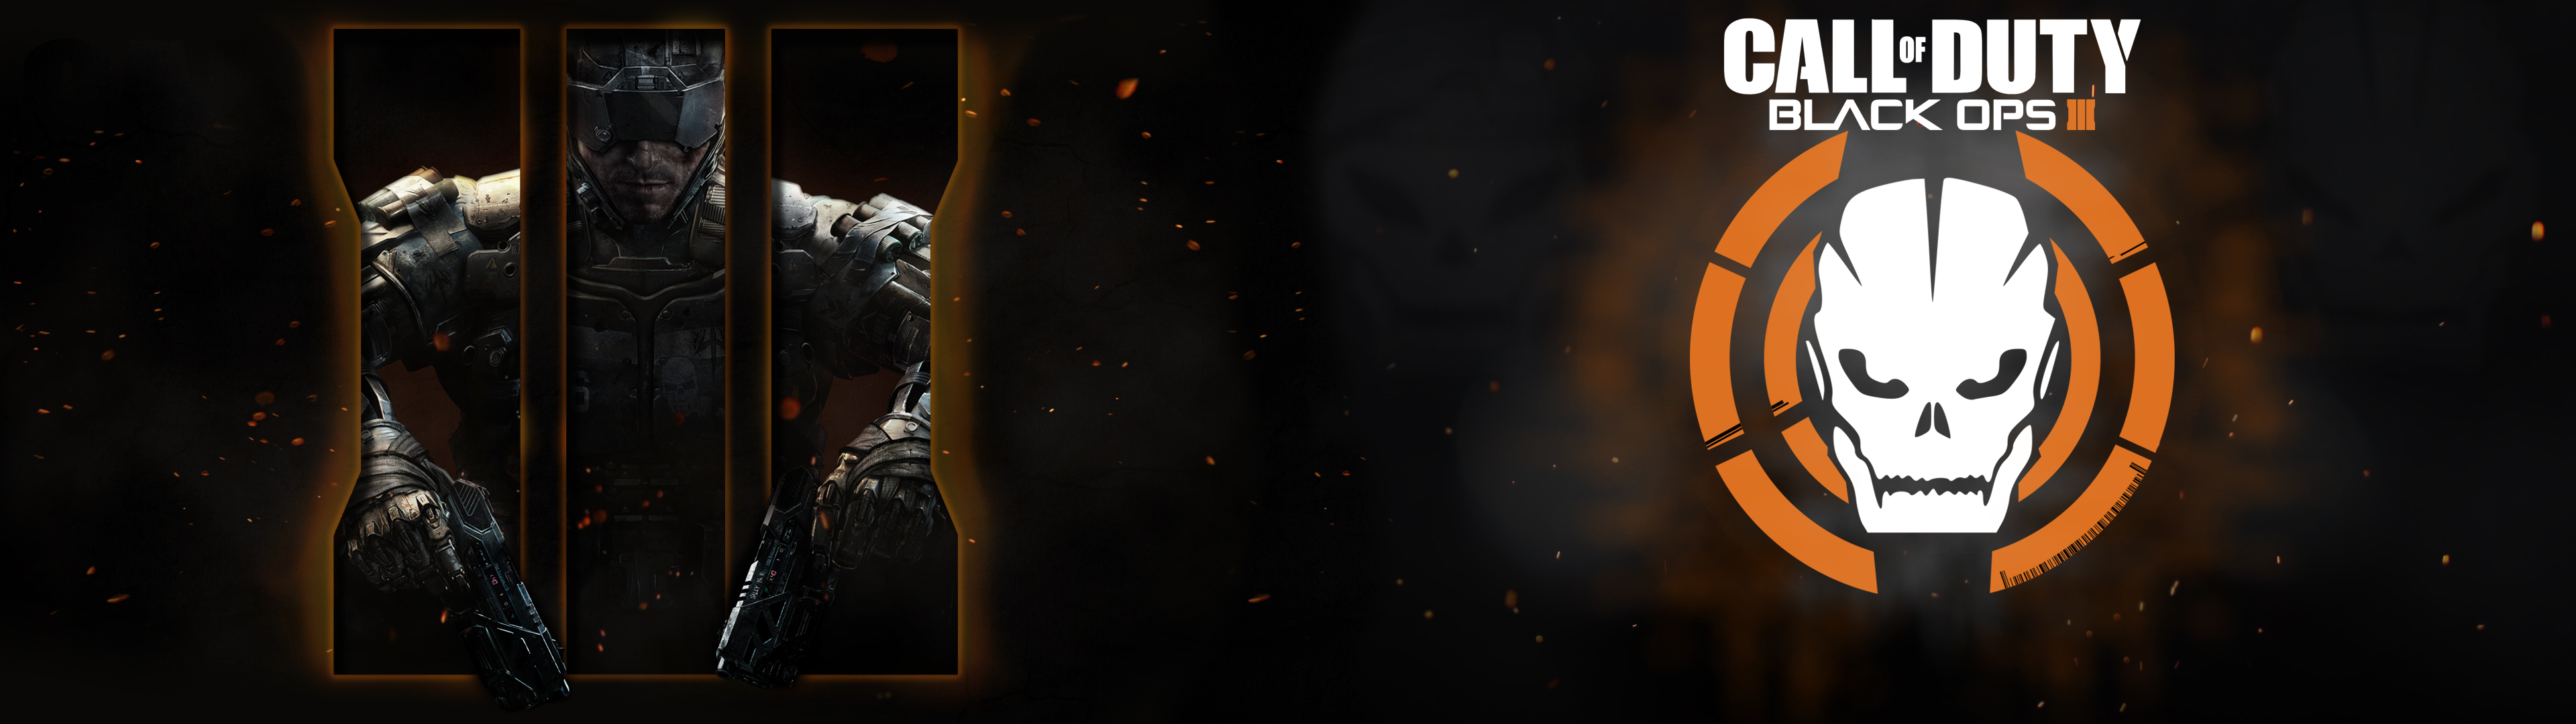 Call of Duty Black Ops 3 Dual Wallpaper 05 by Toby Affenbude by 3840x1080